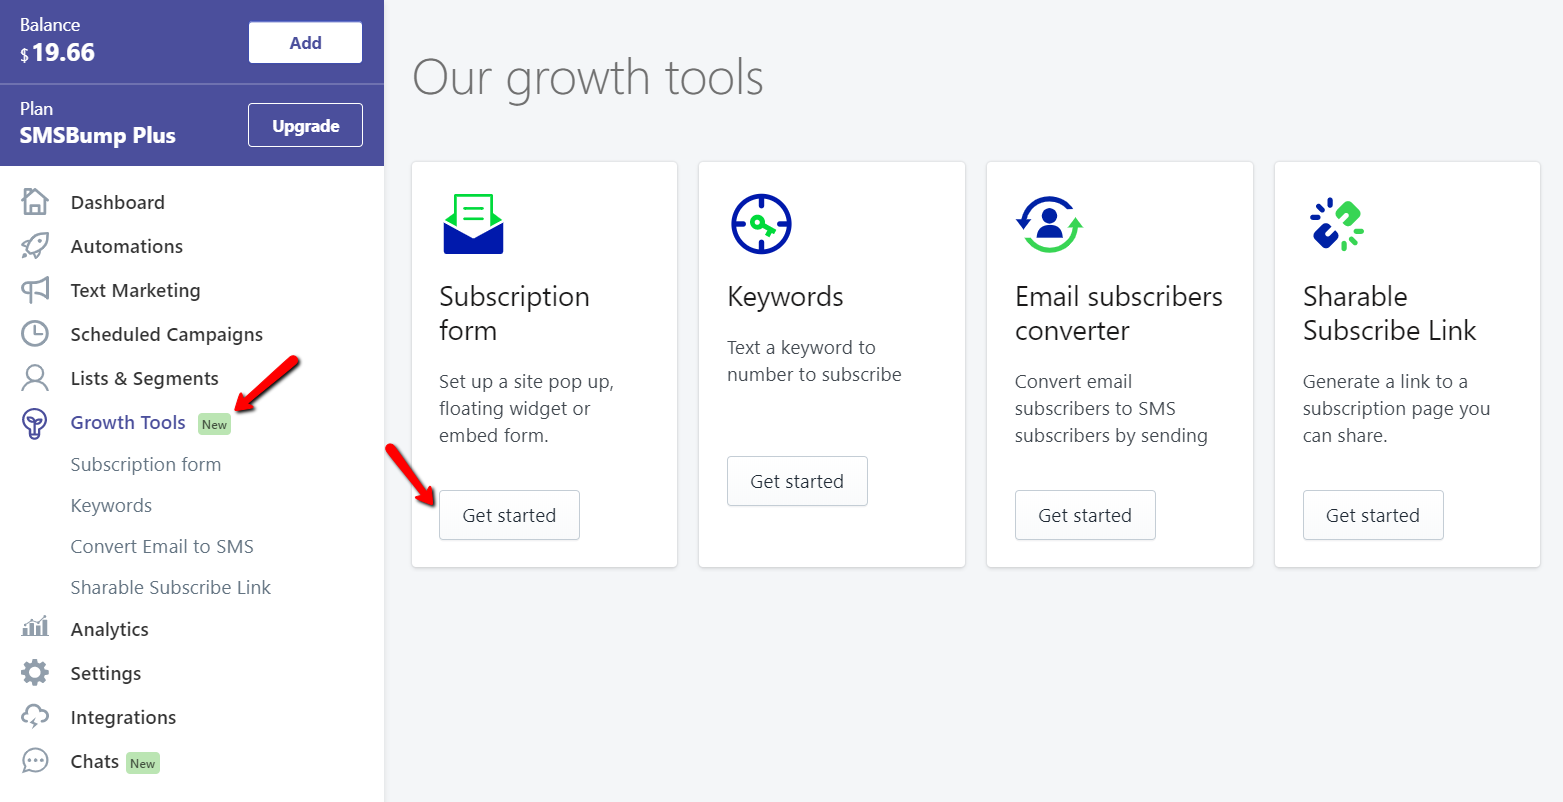 growth_tools_SMSBump